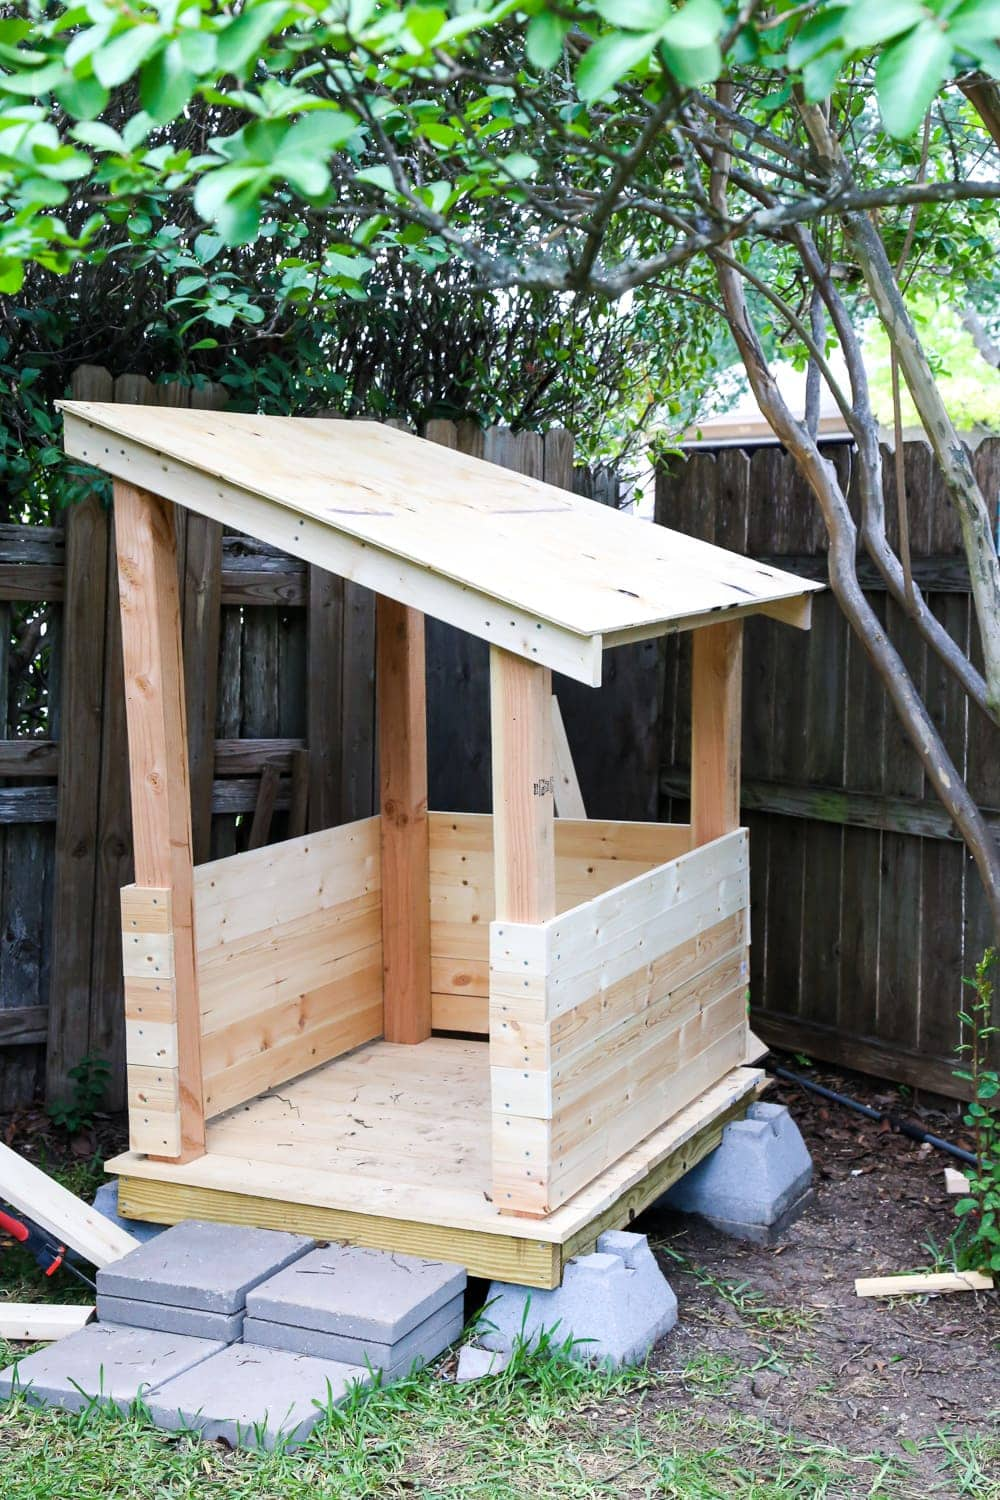 Unpainted DIY playhouse